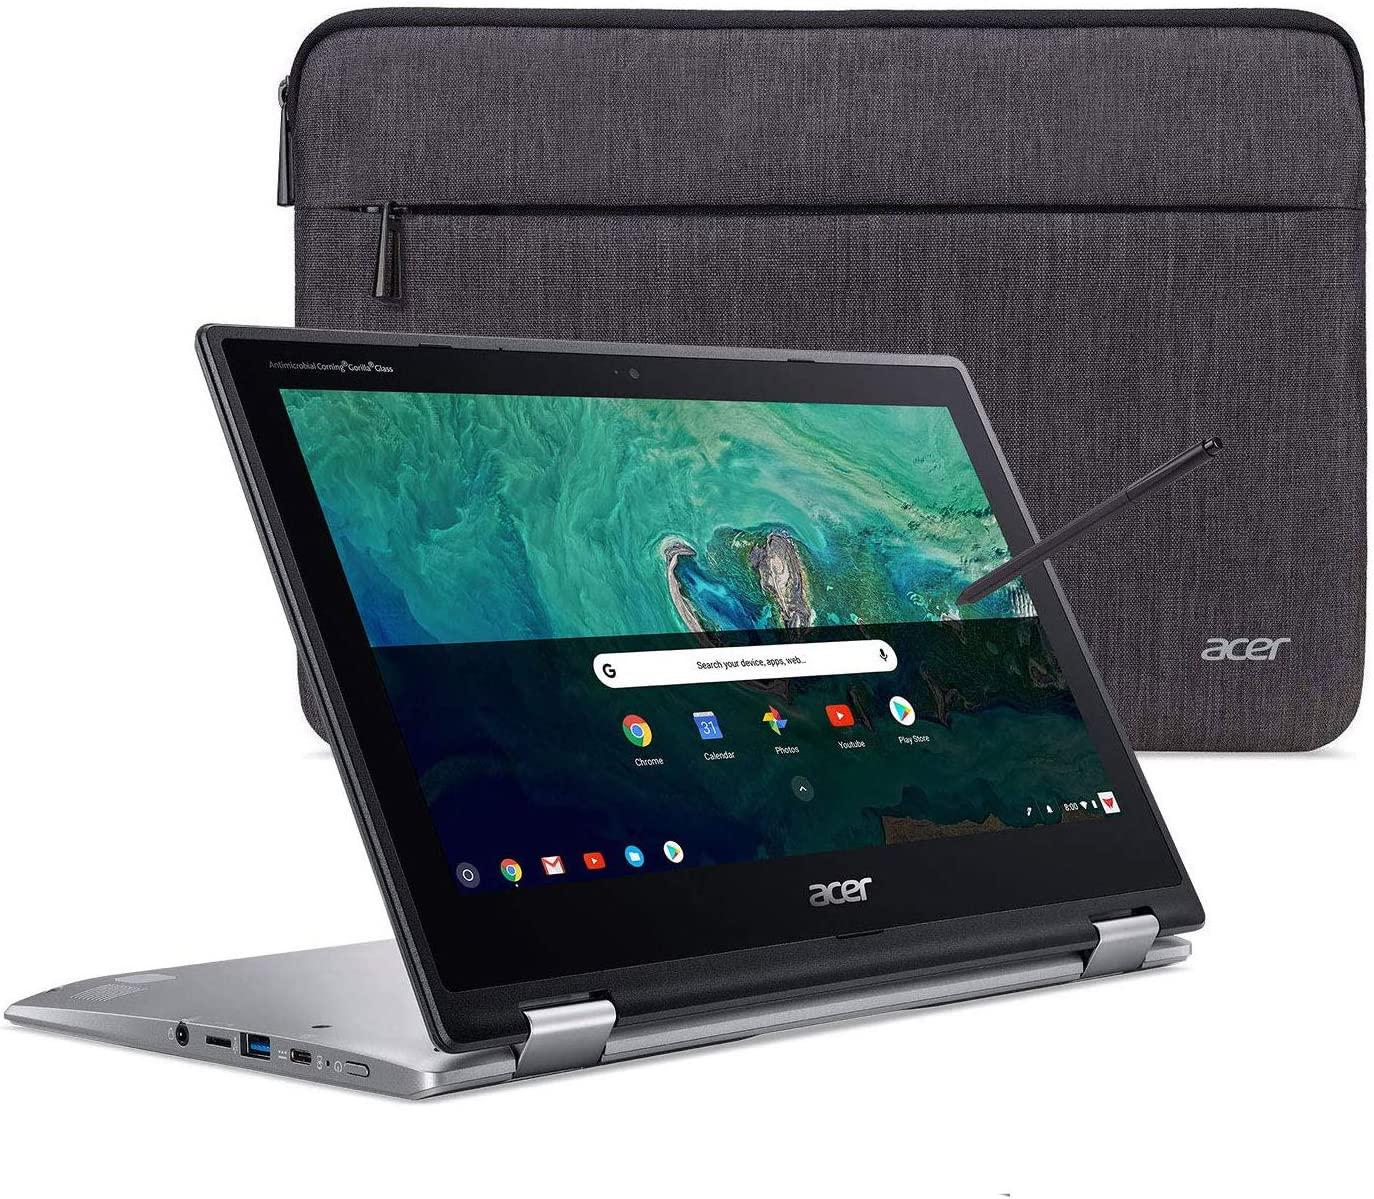 Amazon Com Acer Chromebook Spin 11 Convertible Laptop Intel Celeron N3350 11 6 Hd Touch Display 4gb Ddr4 32gb Emmc 802 11ac Wifi Wacom Emr Pen Sleeve Cp311 1hn C2dv Computers Accessories,Kitchen Cabinet Storage Solutions Amazon